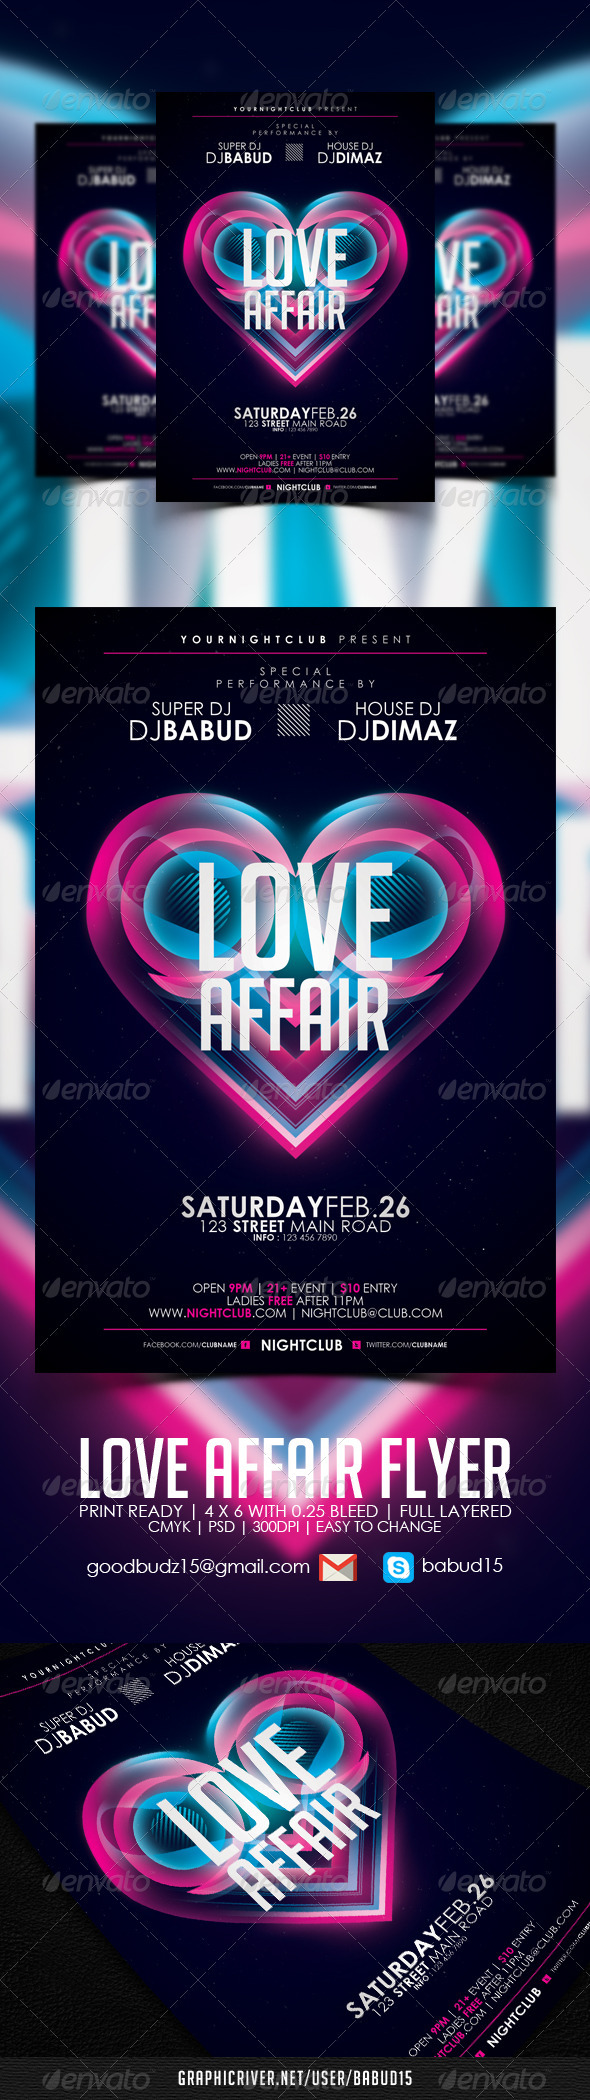 Love Affair Flyer Template - Events Flyers